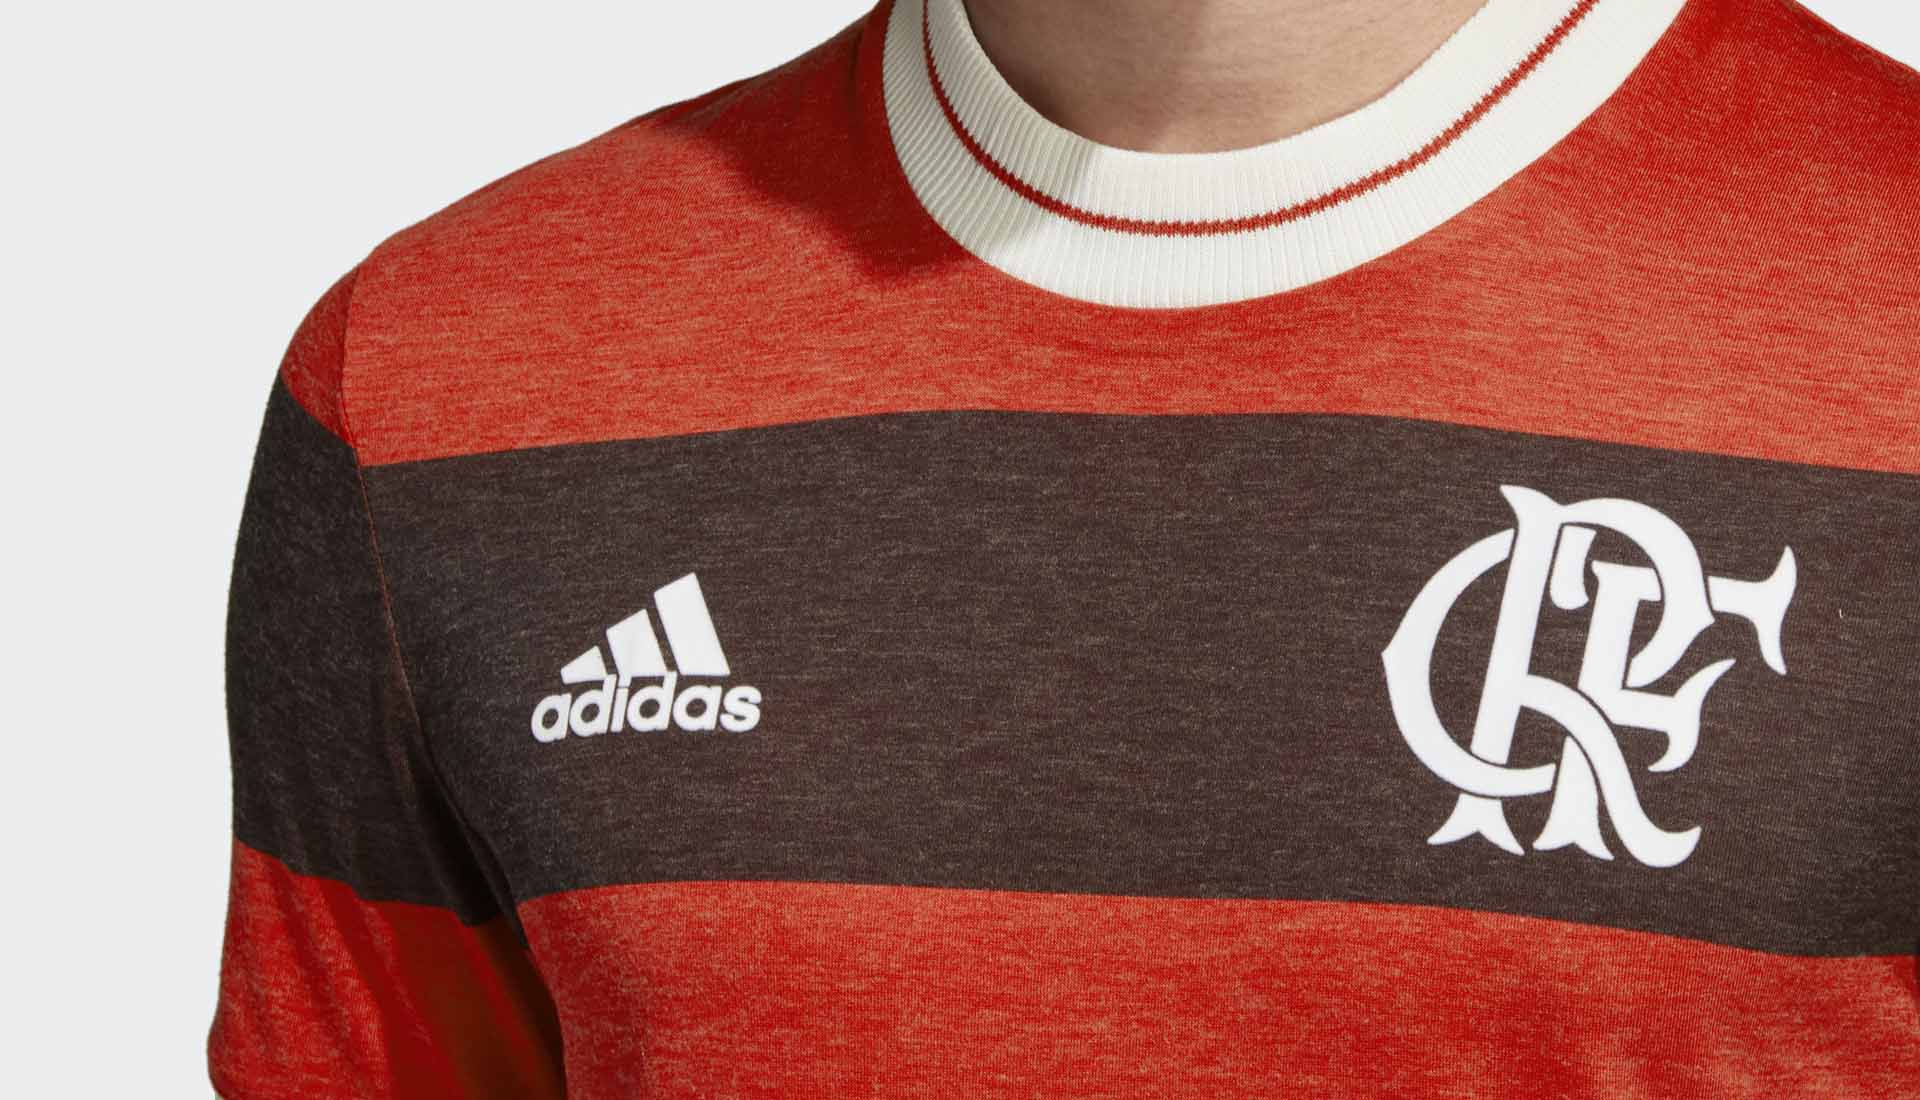 8051111f56 adidas Launch the Flamengo Icon Jersey - SoccerBible